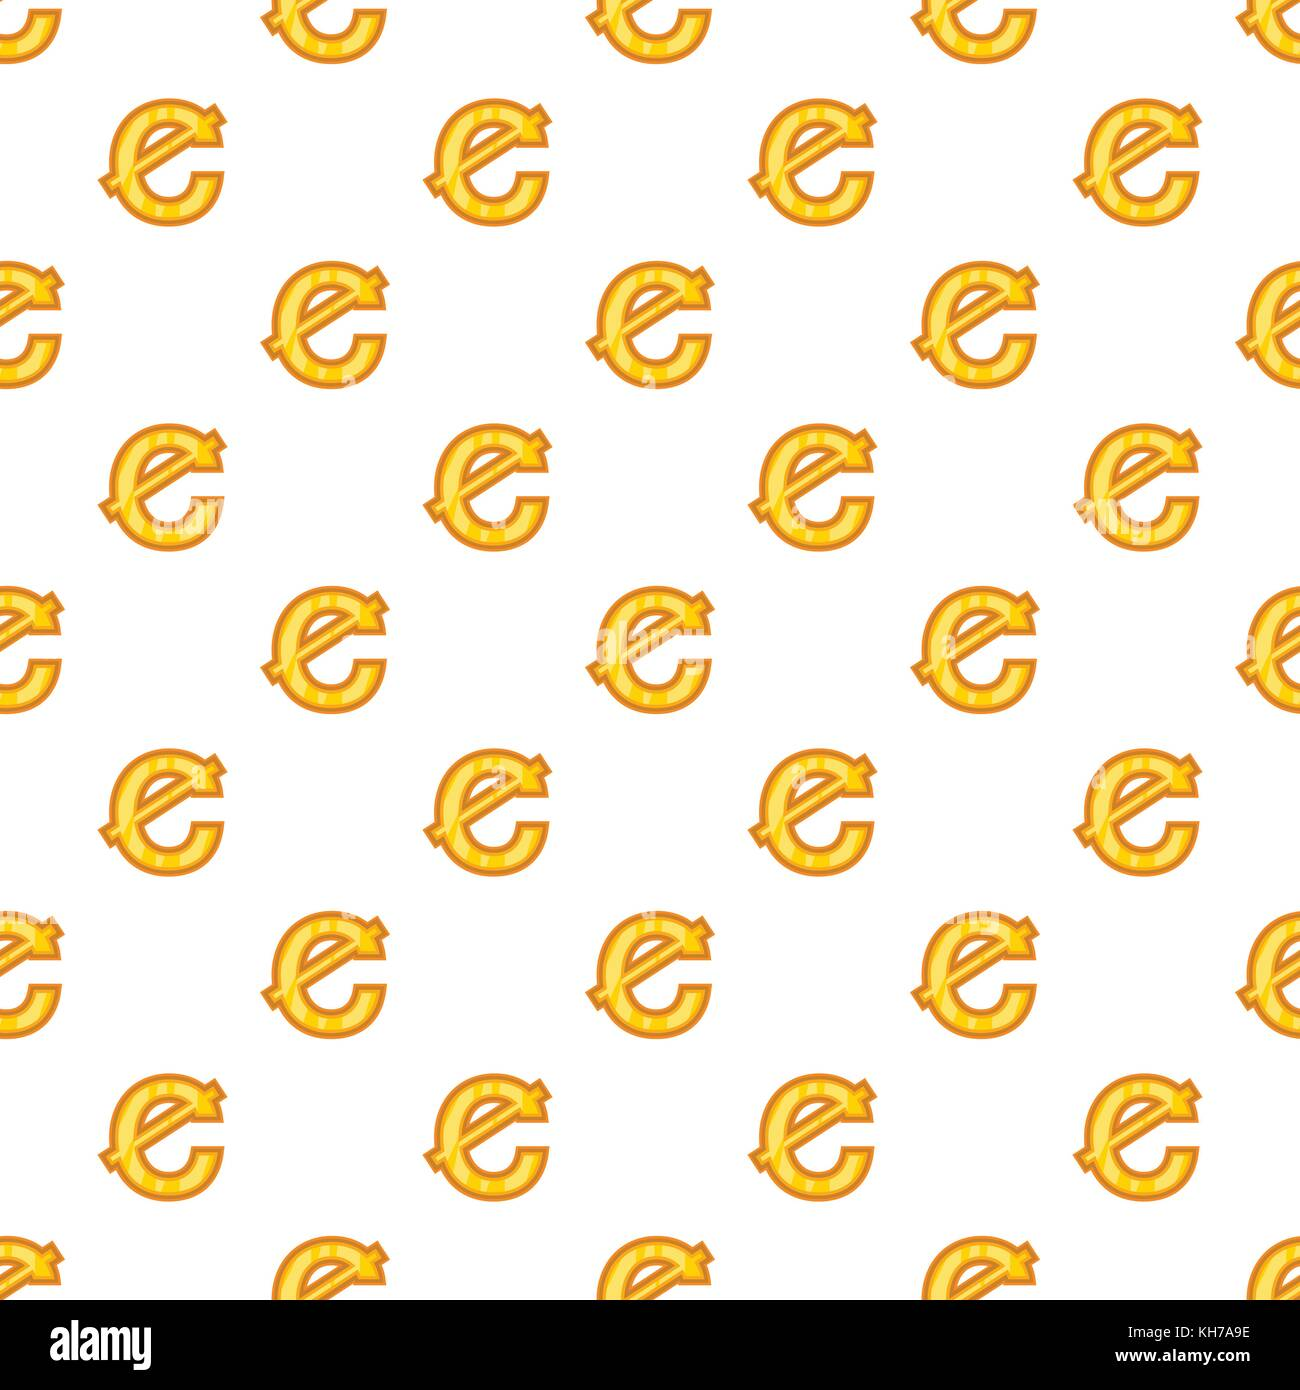 Cent sign stock photos cent sign stock images alamy cent currency symbol pattern cartoon style stock image buycottarizona Gallery